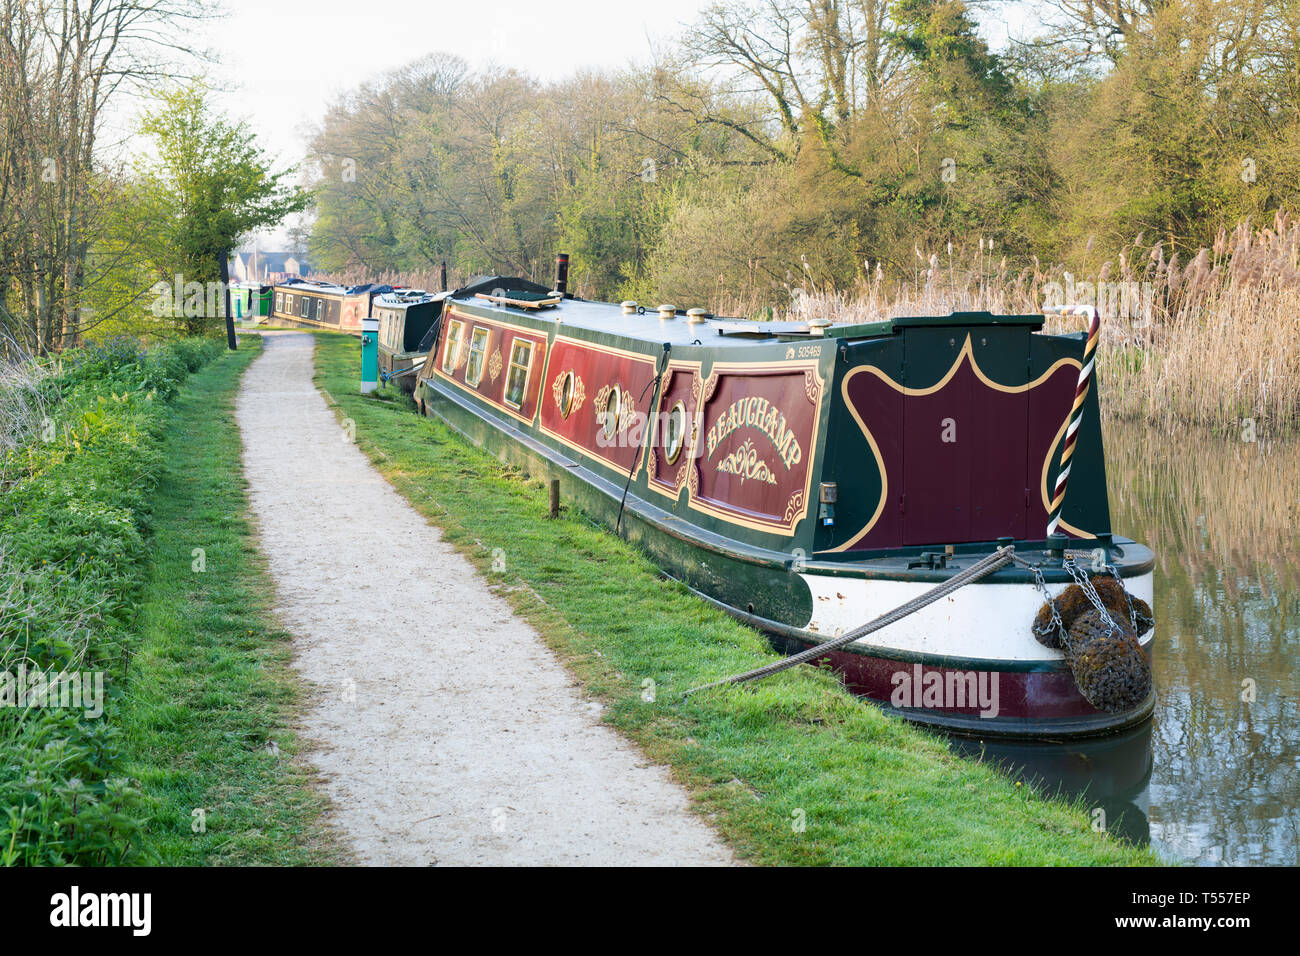 Canal boats on the oxford canal in the early morning spring sunlight. Thrupp, Oxfordshire, England Stock Photo